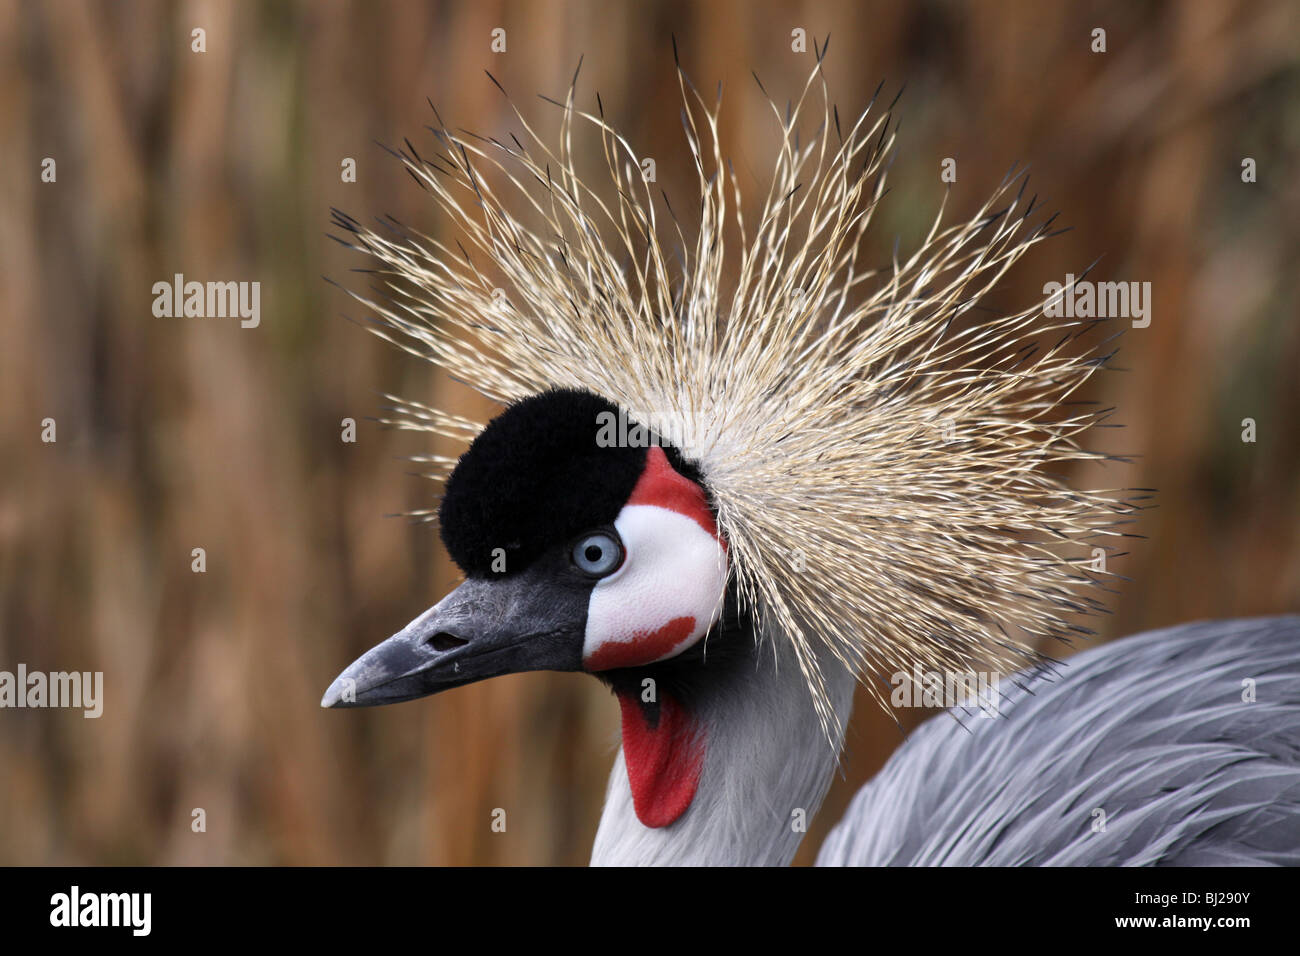 Close Up Of Head Feathers Of African Grey Crowned Crane Balearica regulorum Taken At Martin Mere WWT, Lancashire - Stock Image